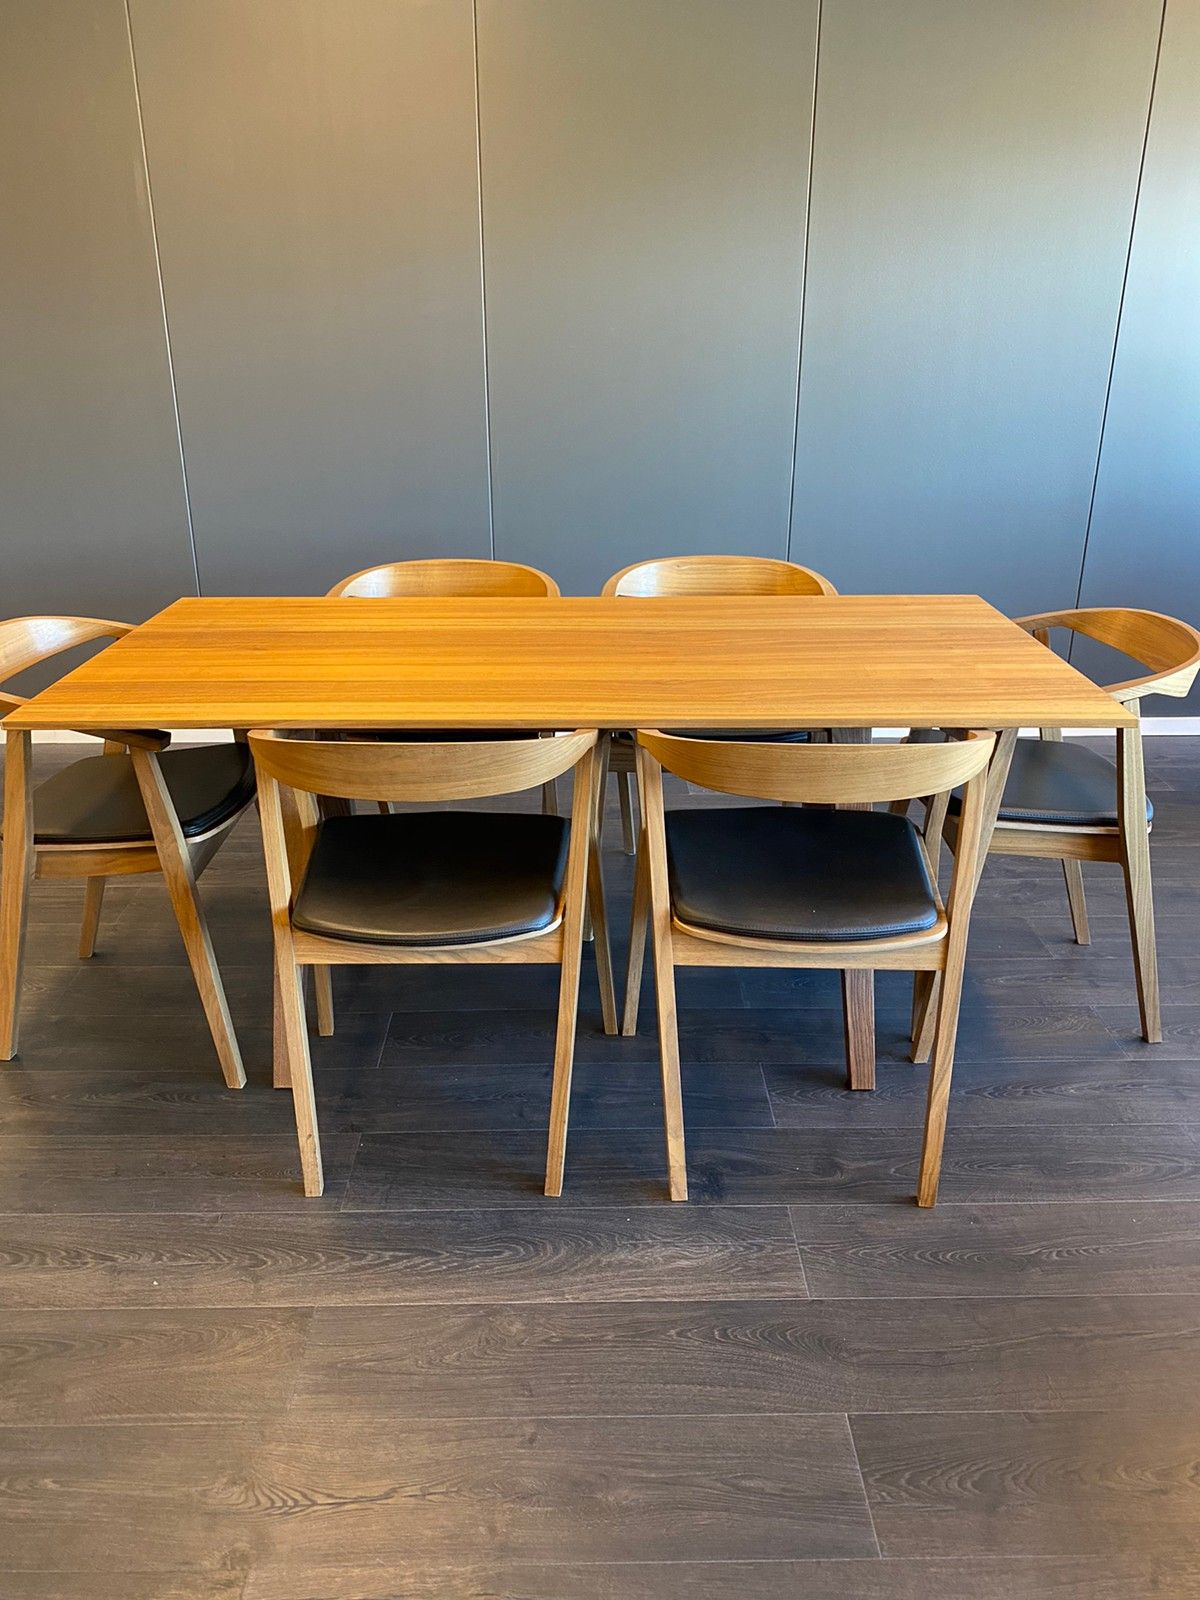 Picture of: 2 Stk Ikea Stockholm Stoler Finn No